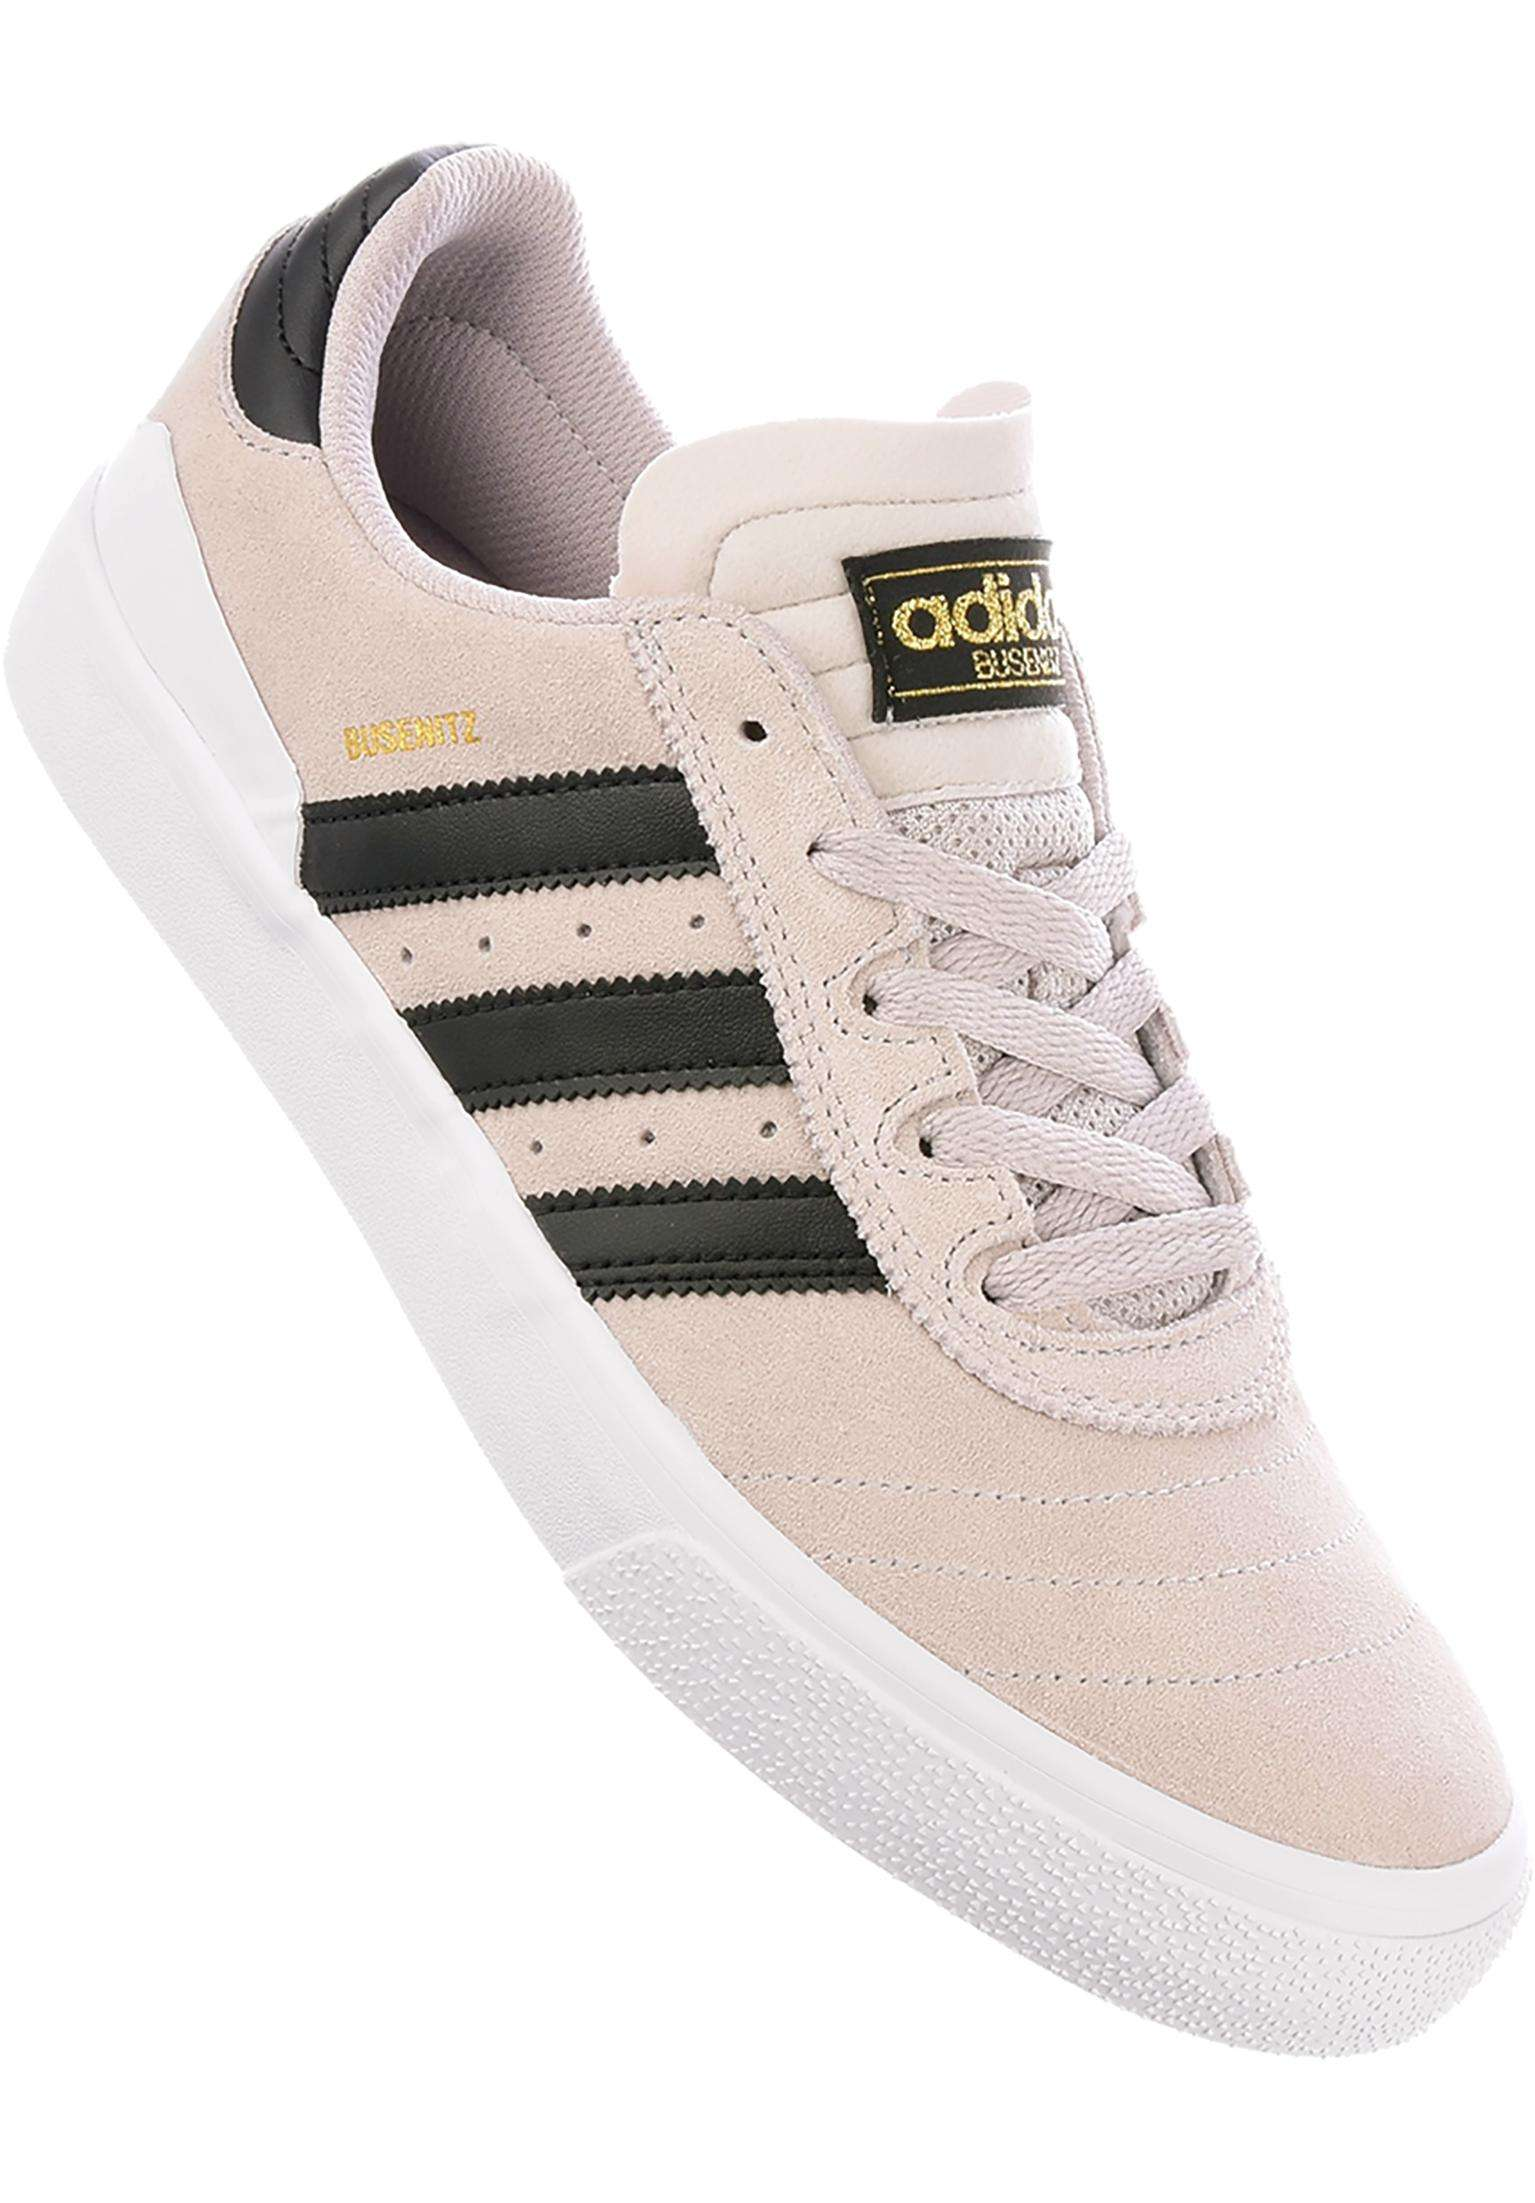 low priced b06fb e62ae Busenitz Vulc ADV adidas-skateboarding All Shoes in  crystalwhite-coreblack-white for Men   Titus